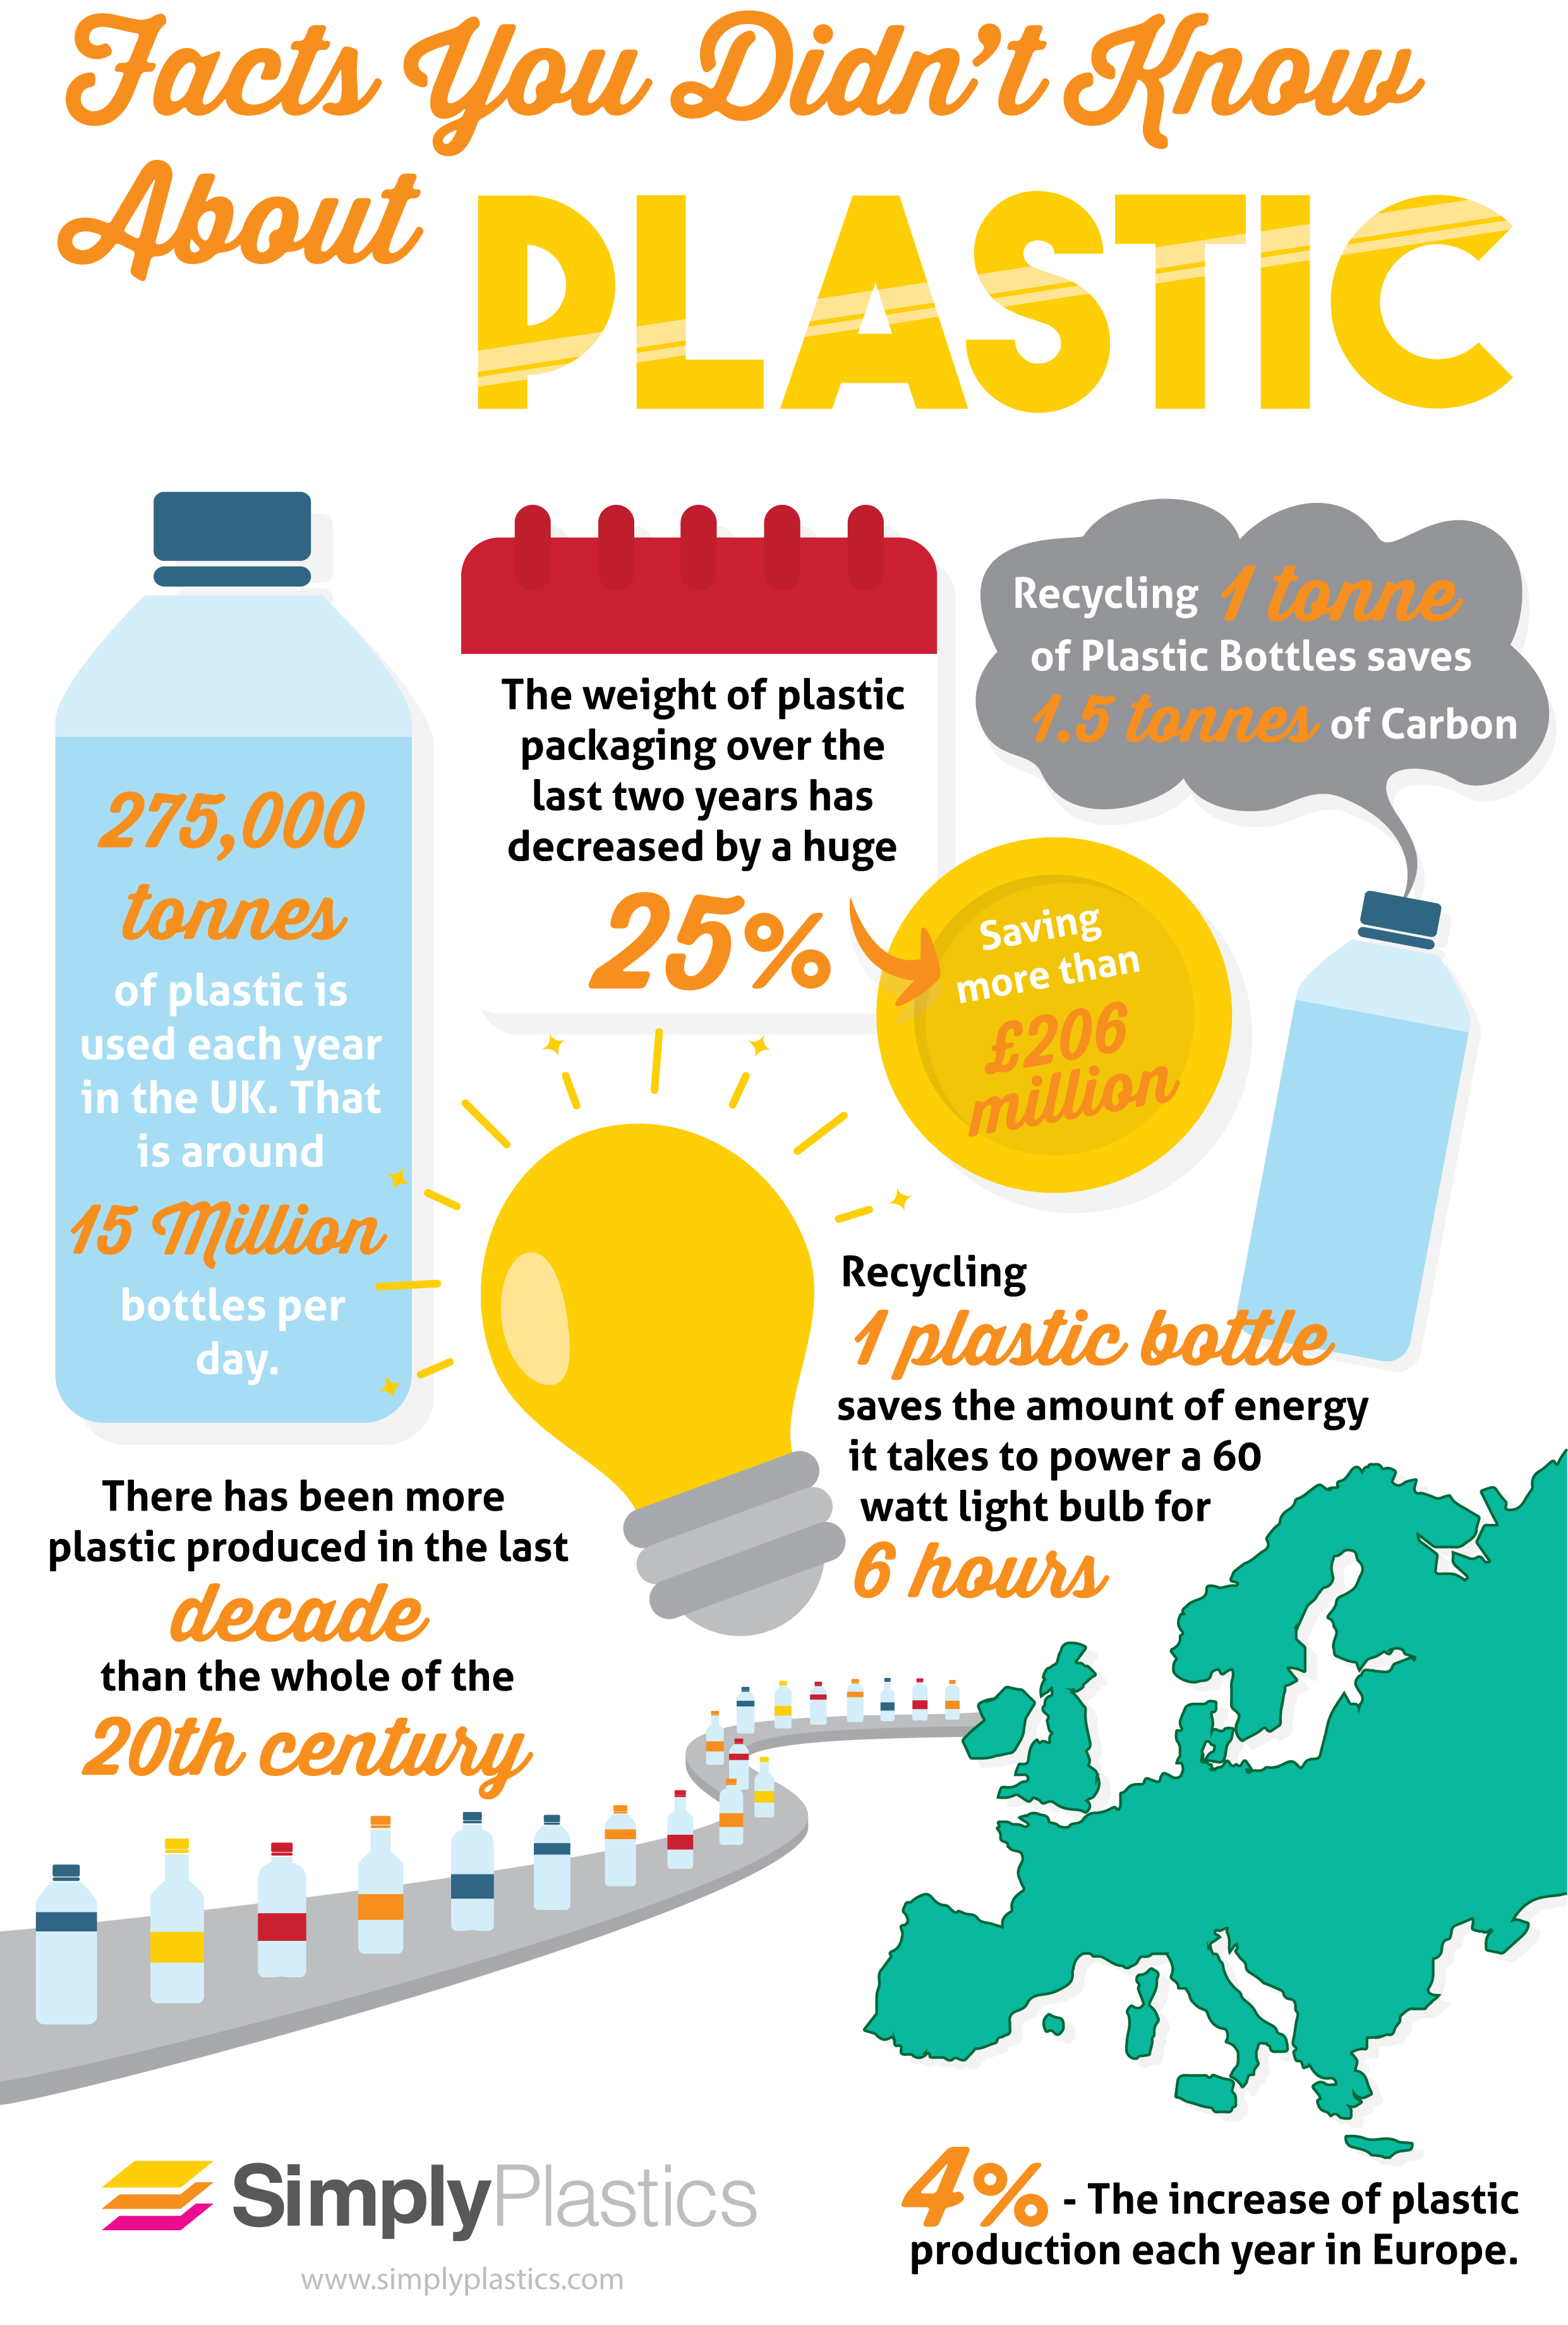 Facts You Didn't Know About Plastic